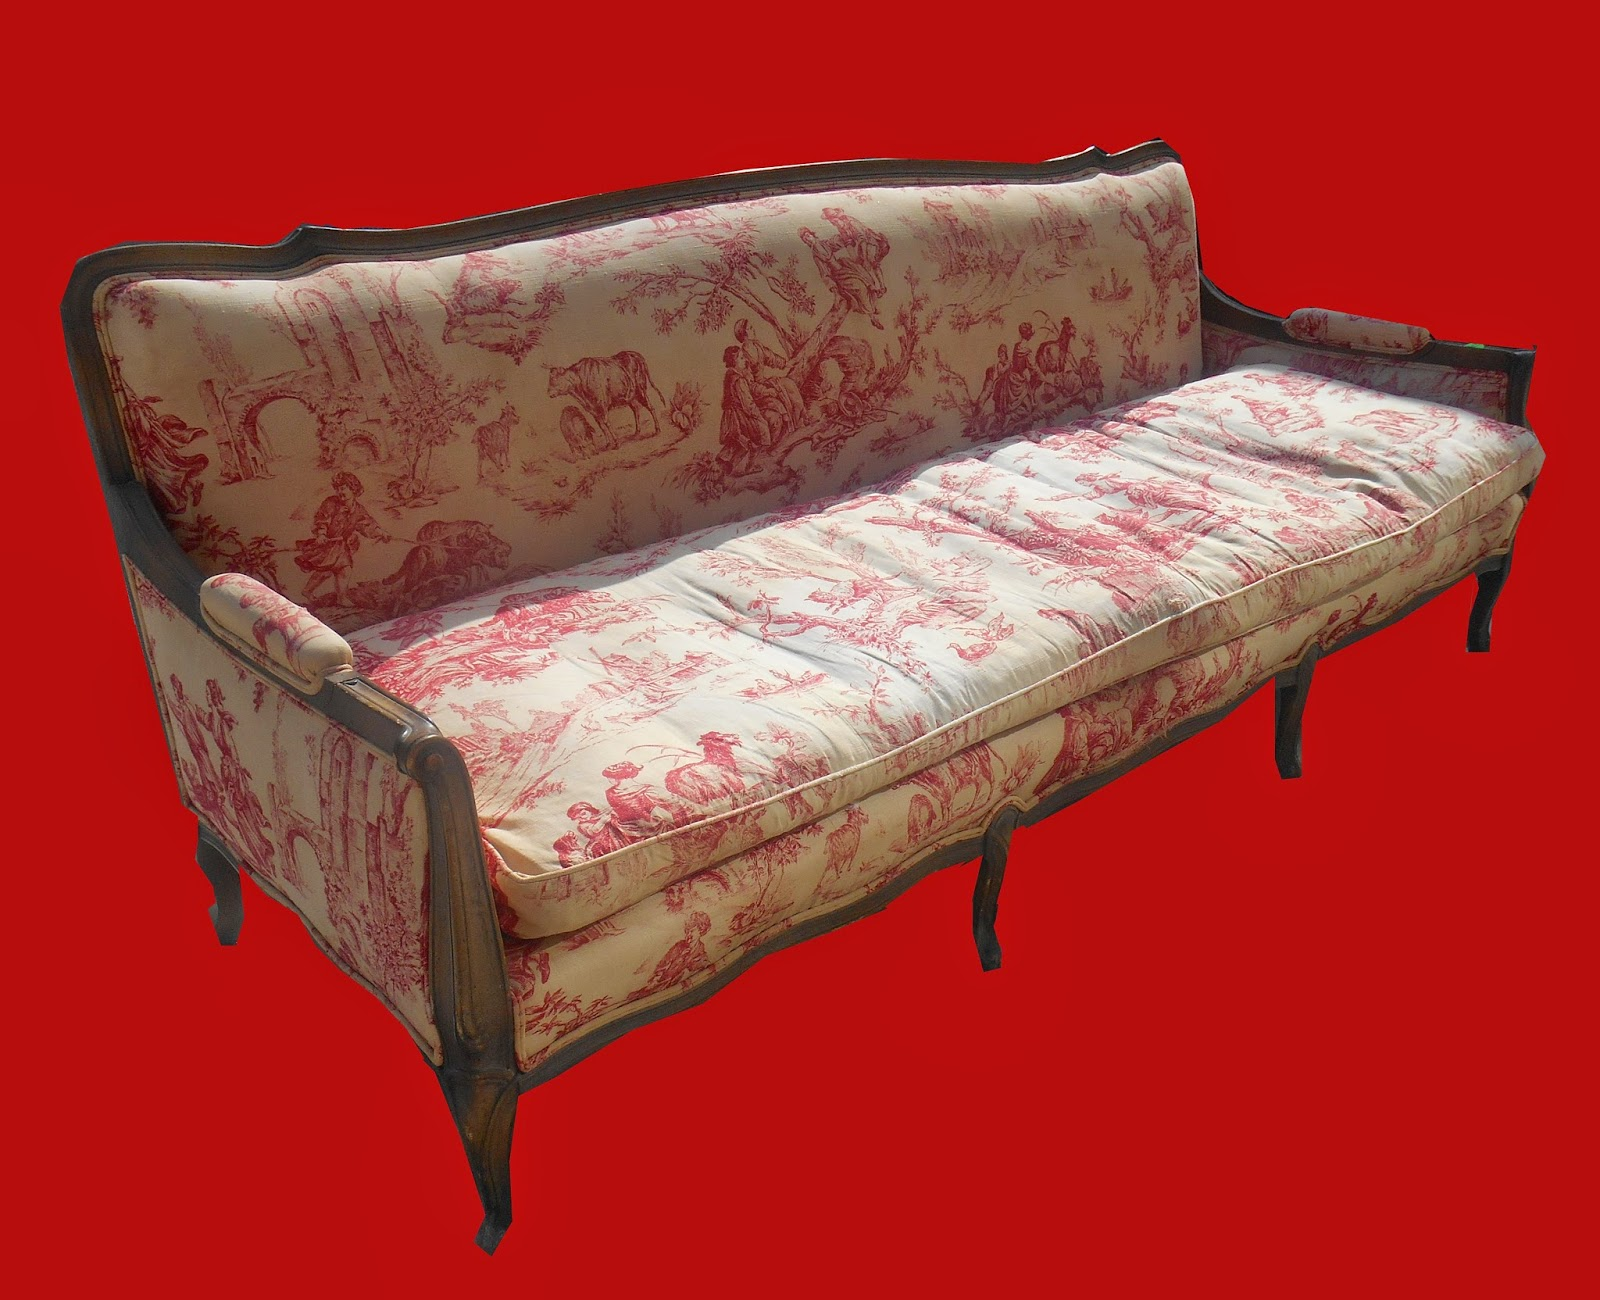 Uhuru Furniture Collectibles Vintage Sofa In Red